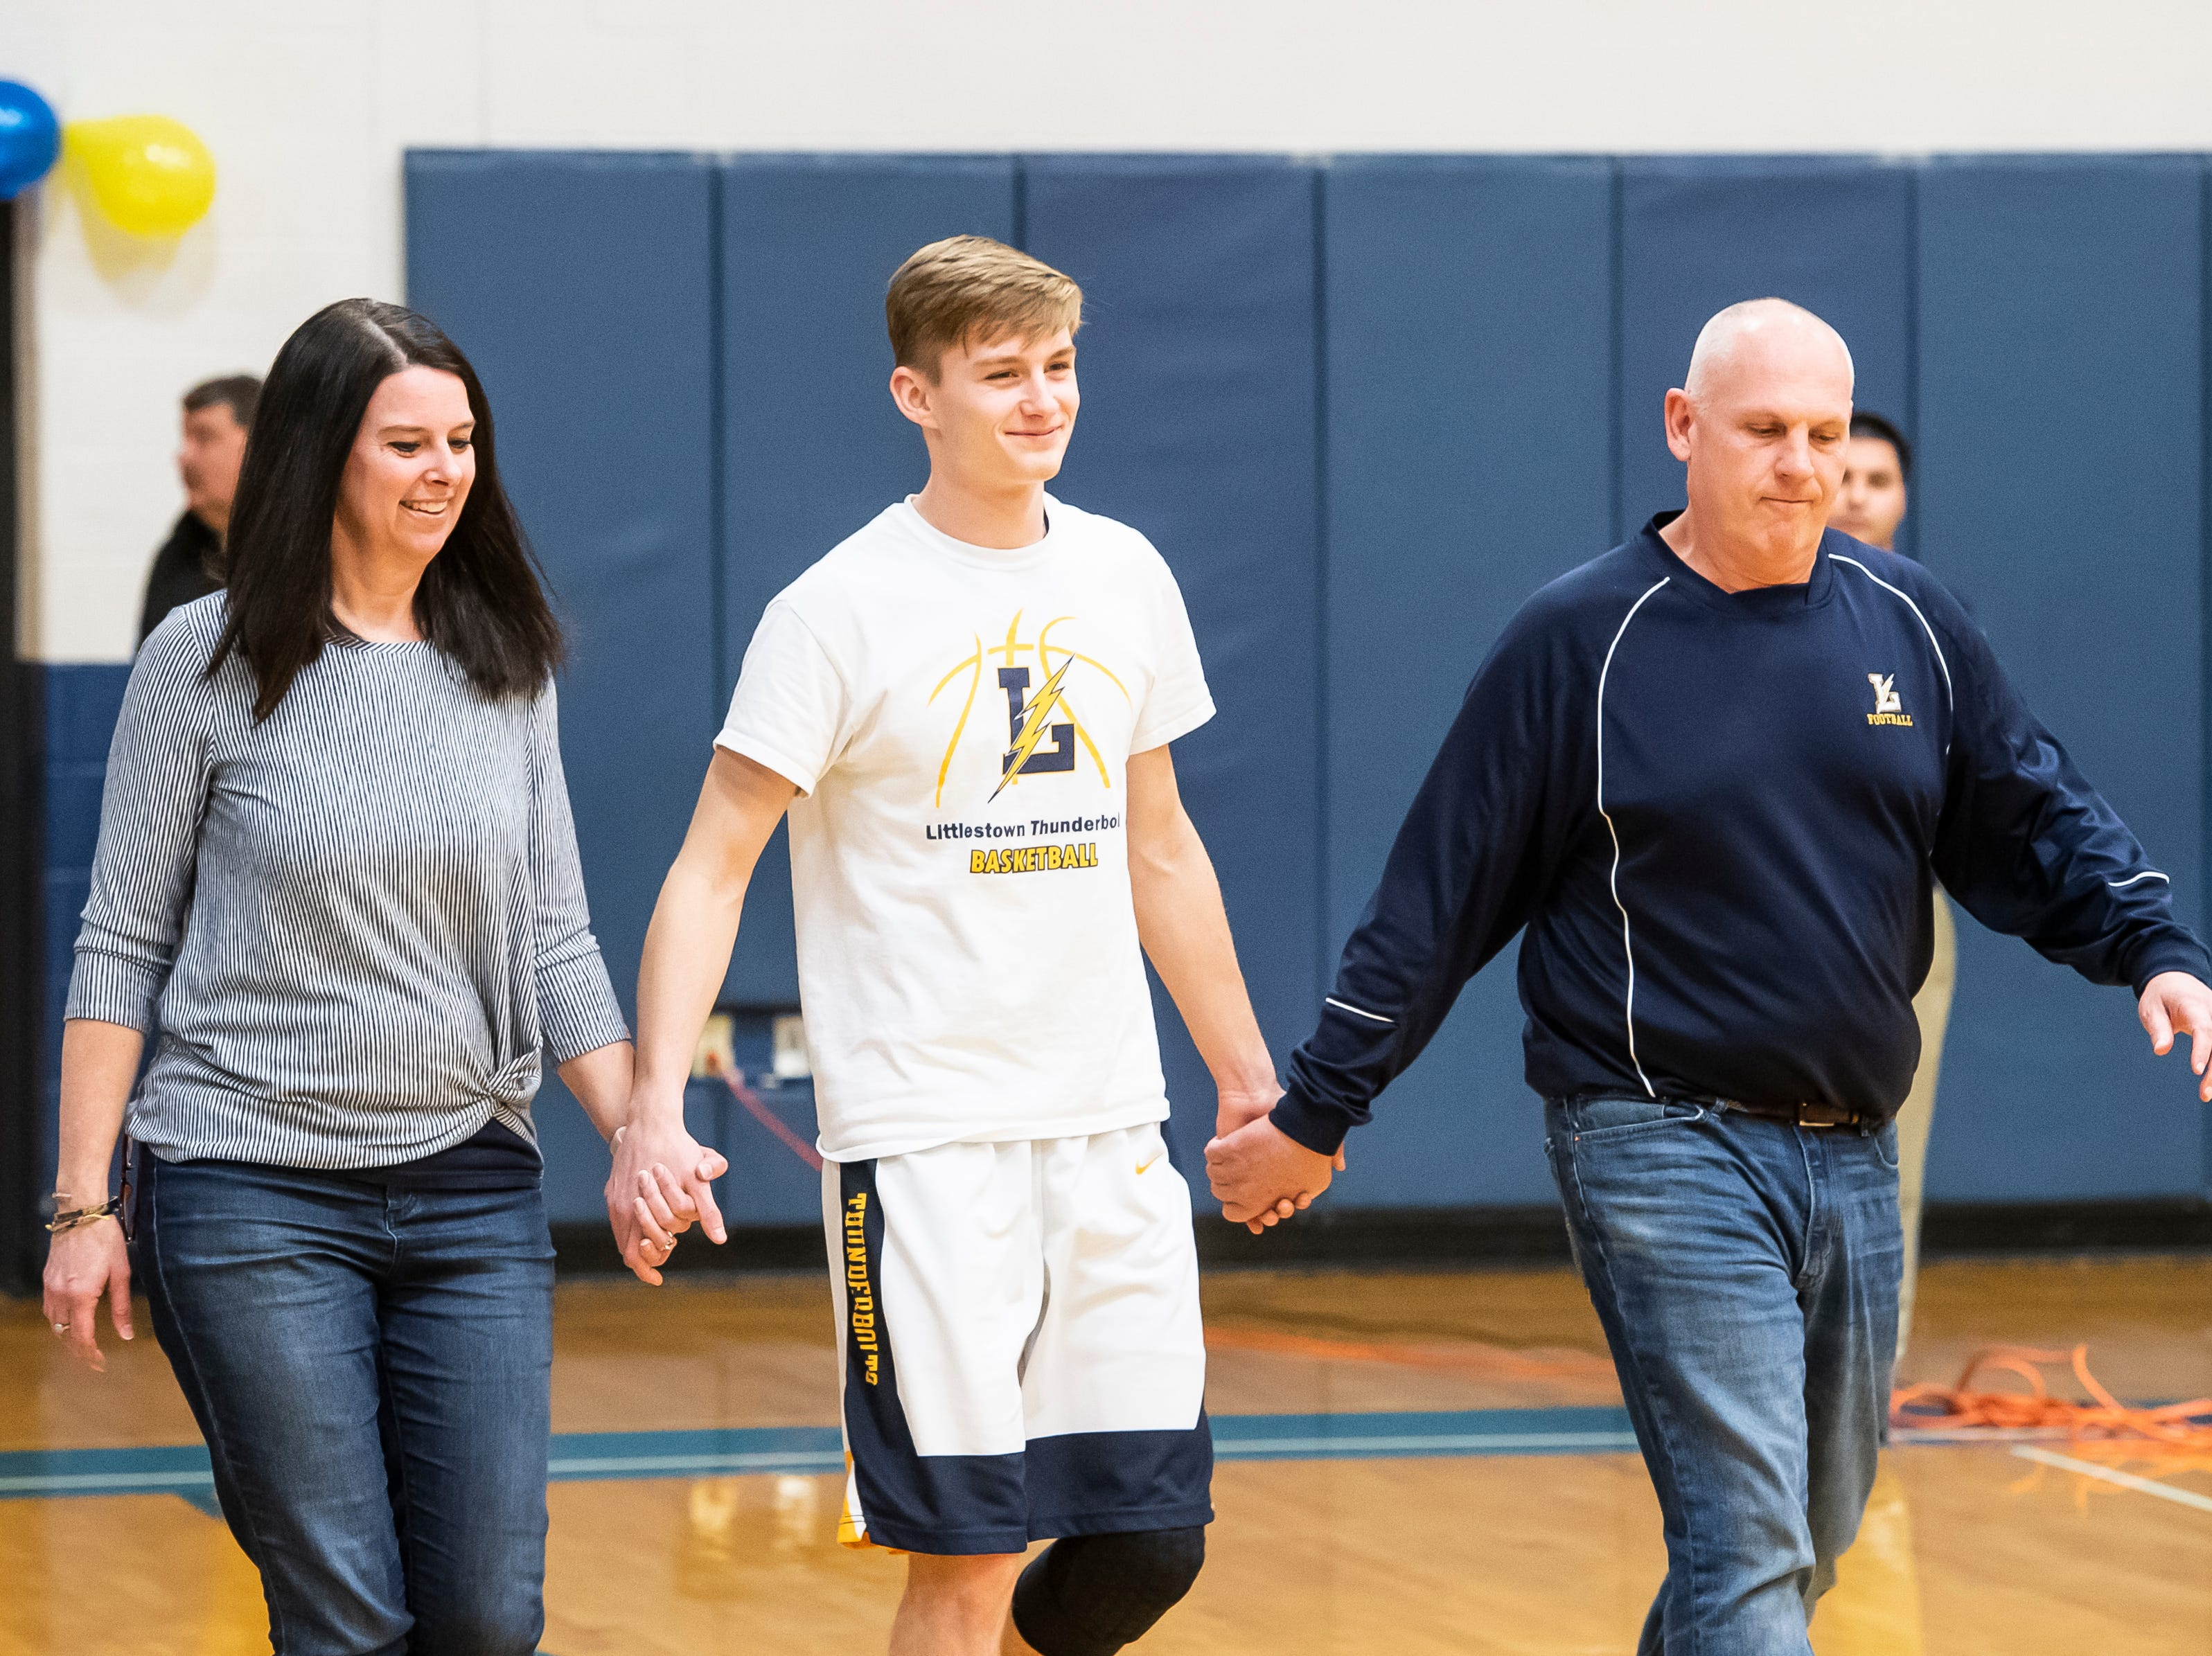 Littlestown's Jakob Lane is honored during senior night Tuesday, February 5, 2019.